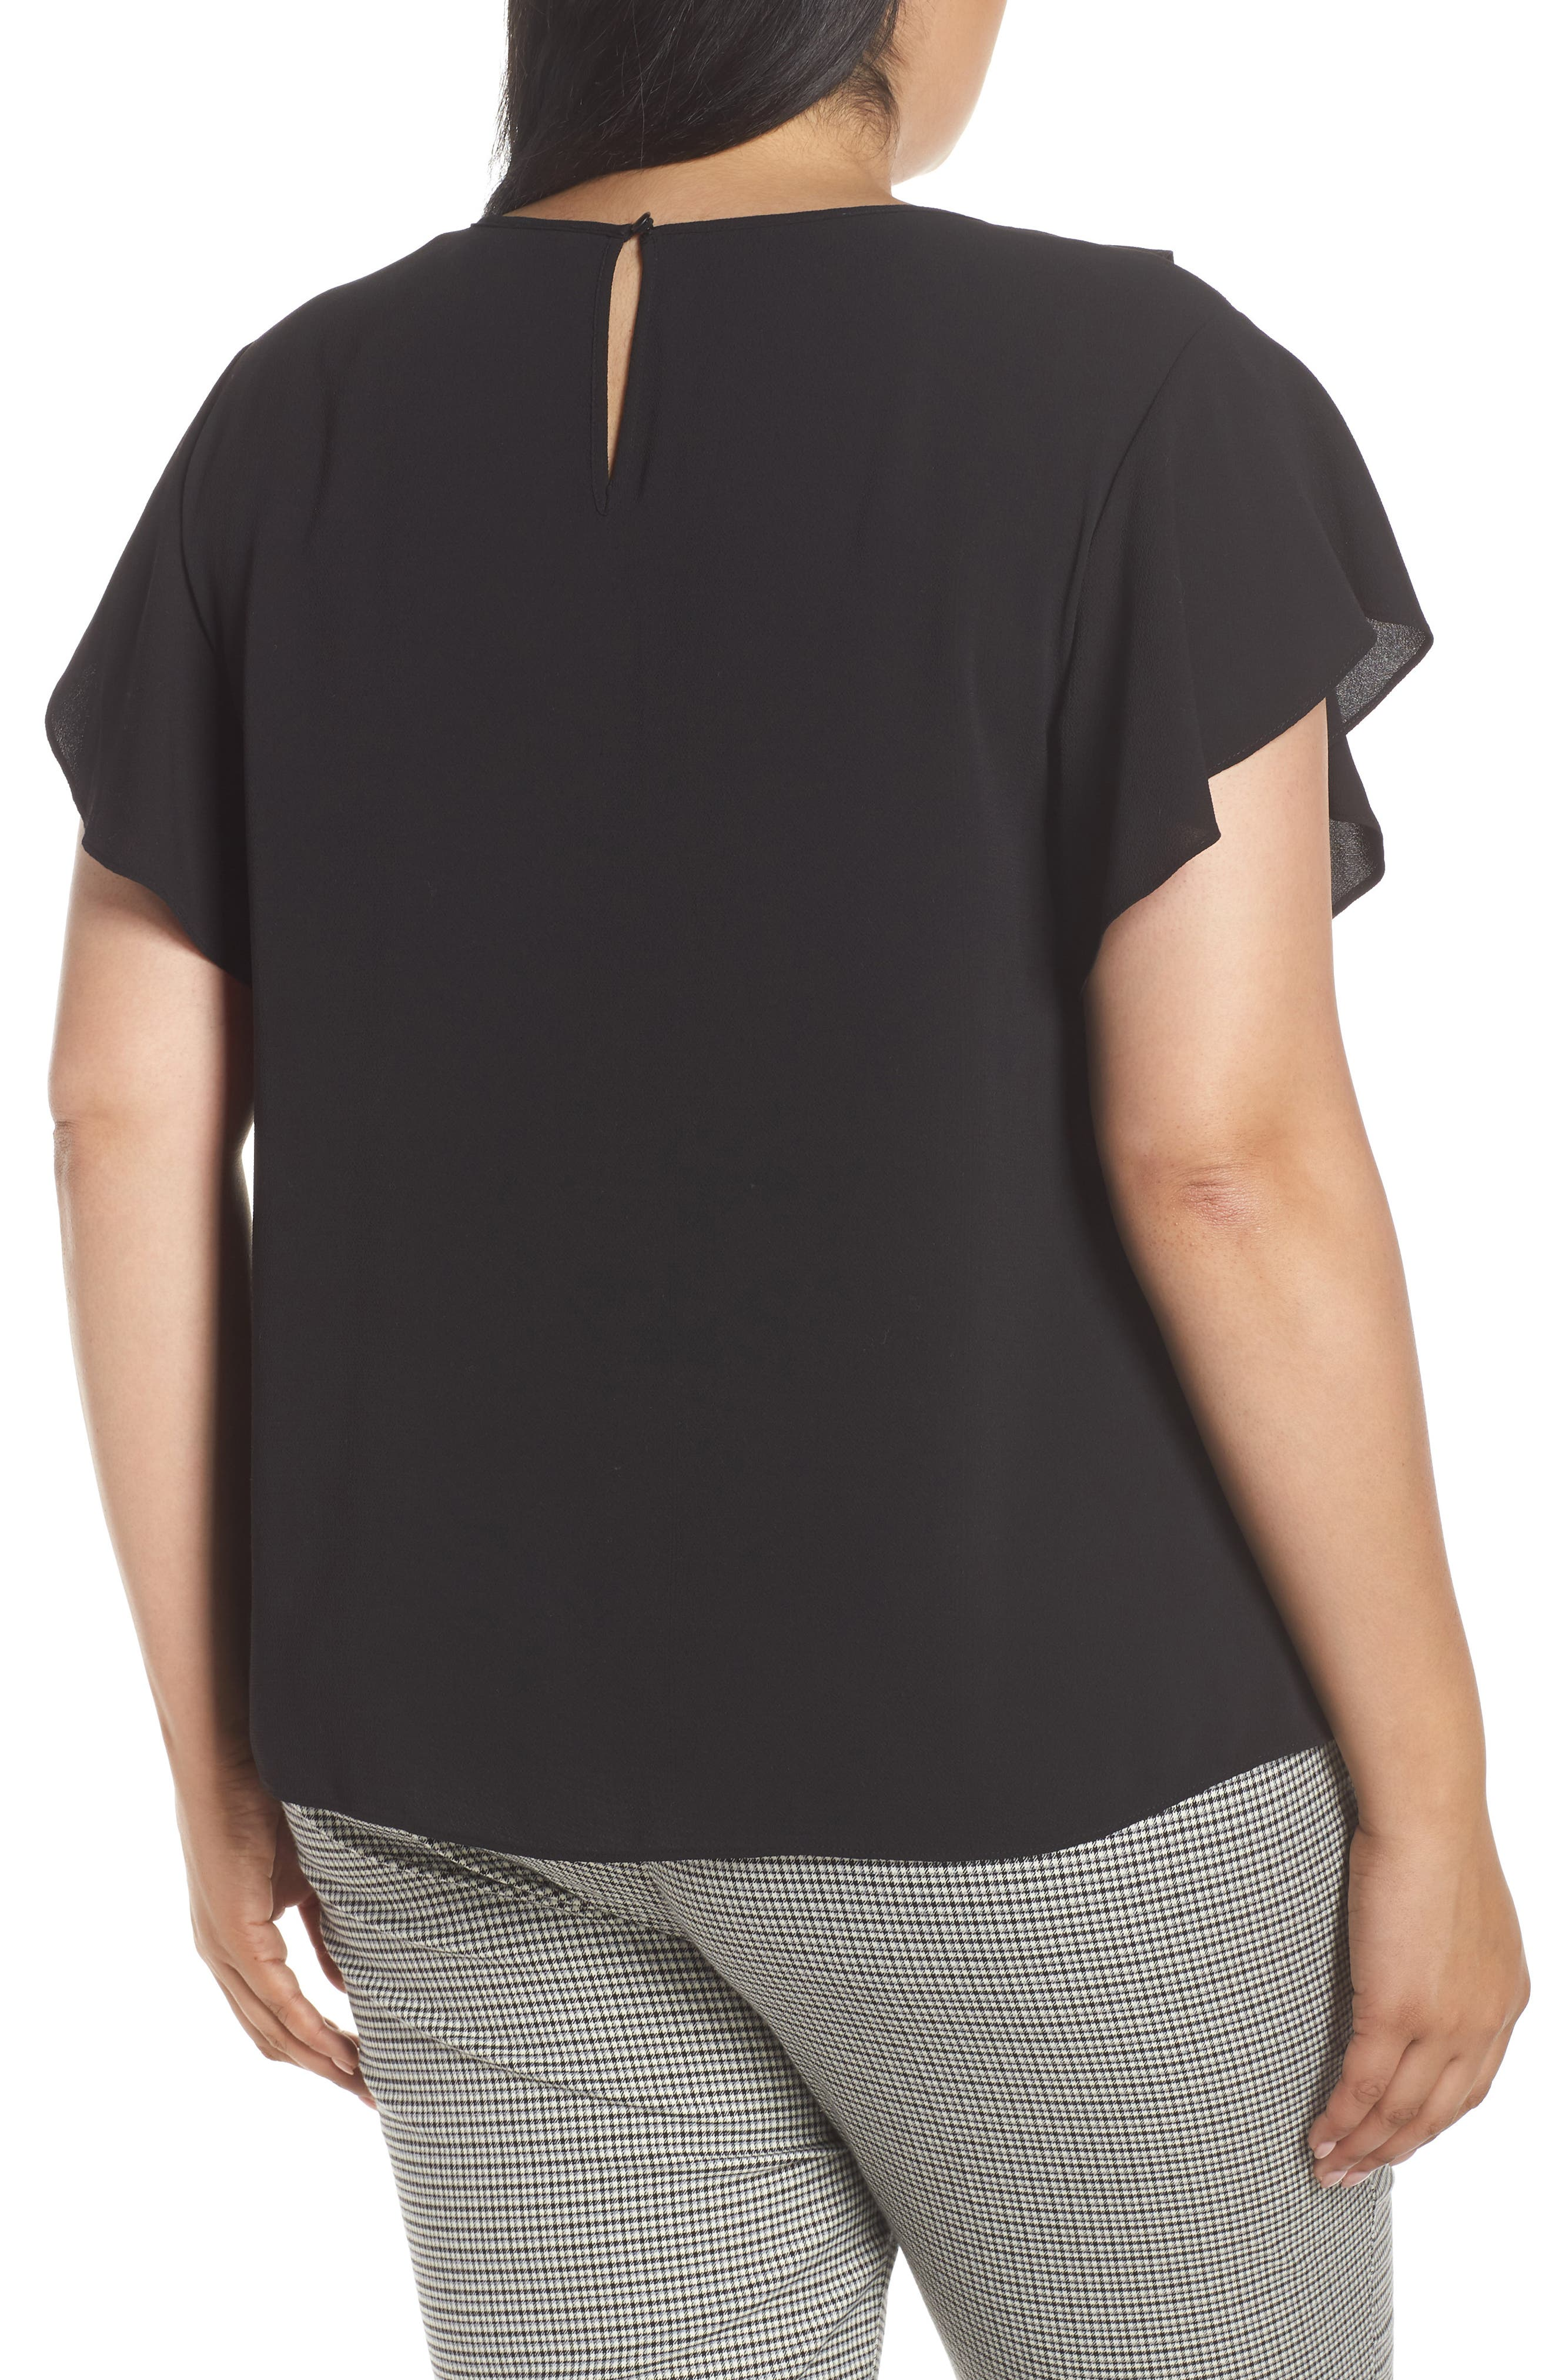 VINCE CAMUTO, Ruffle Flutter Sleeve Top, Alternate thumbnail 2, color, RICH BLACK